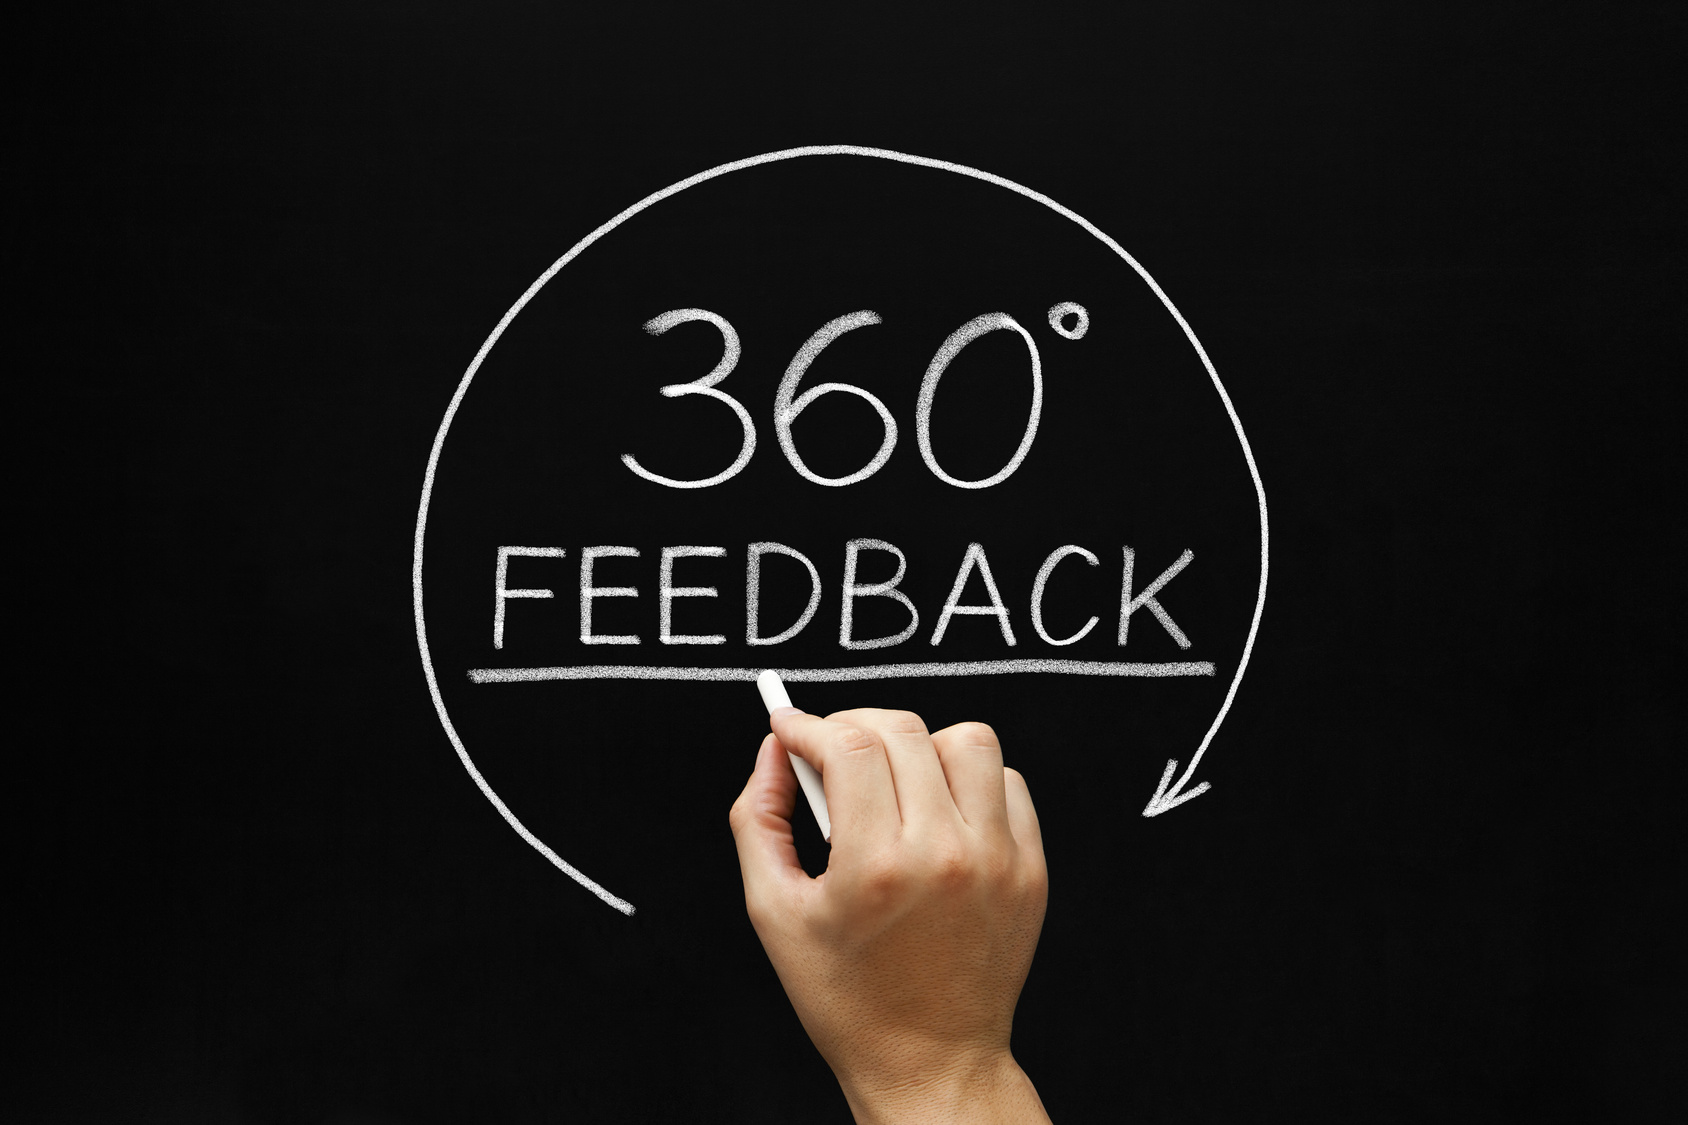 All about 360 degree feedback